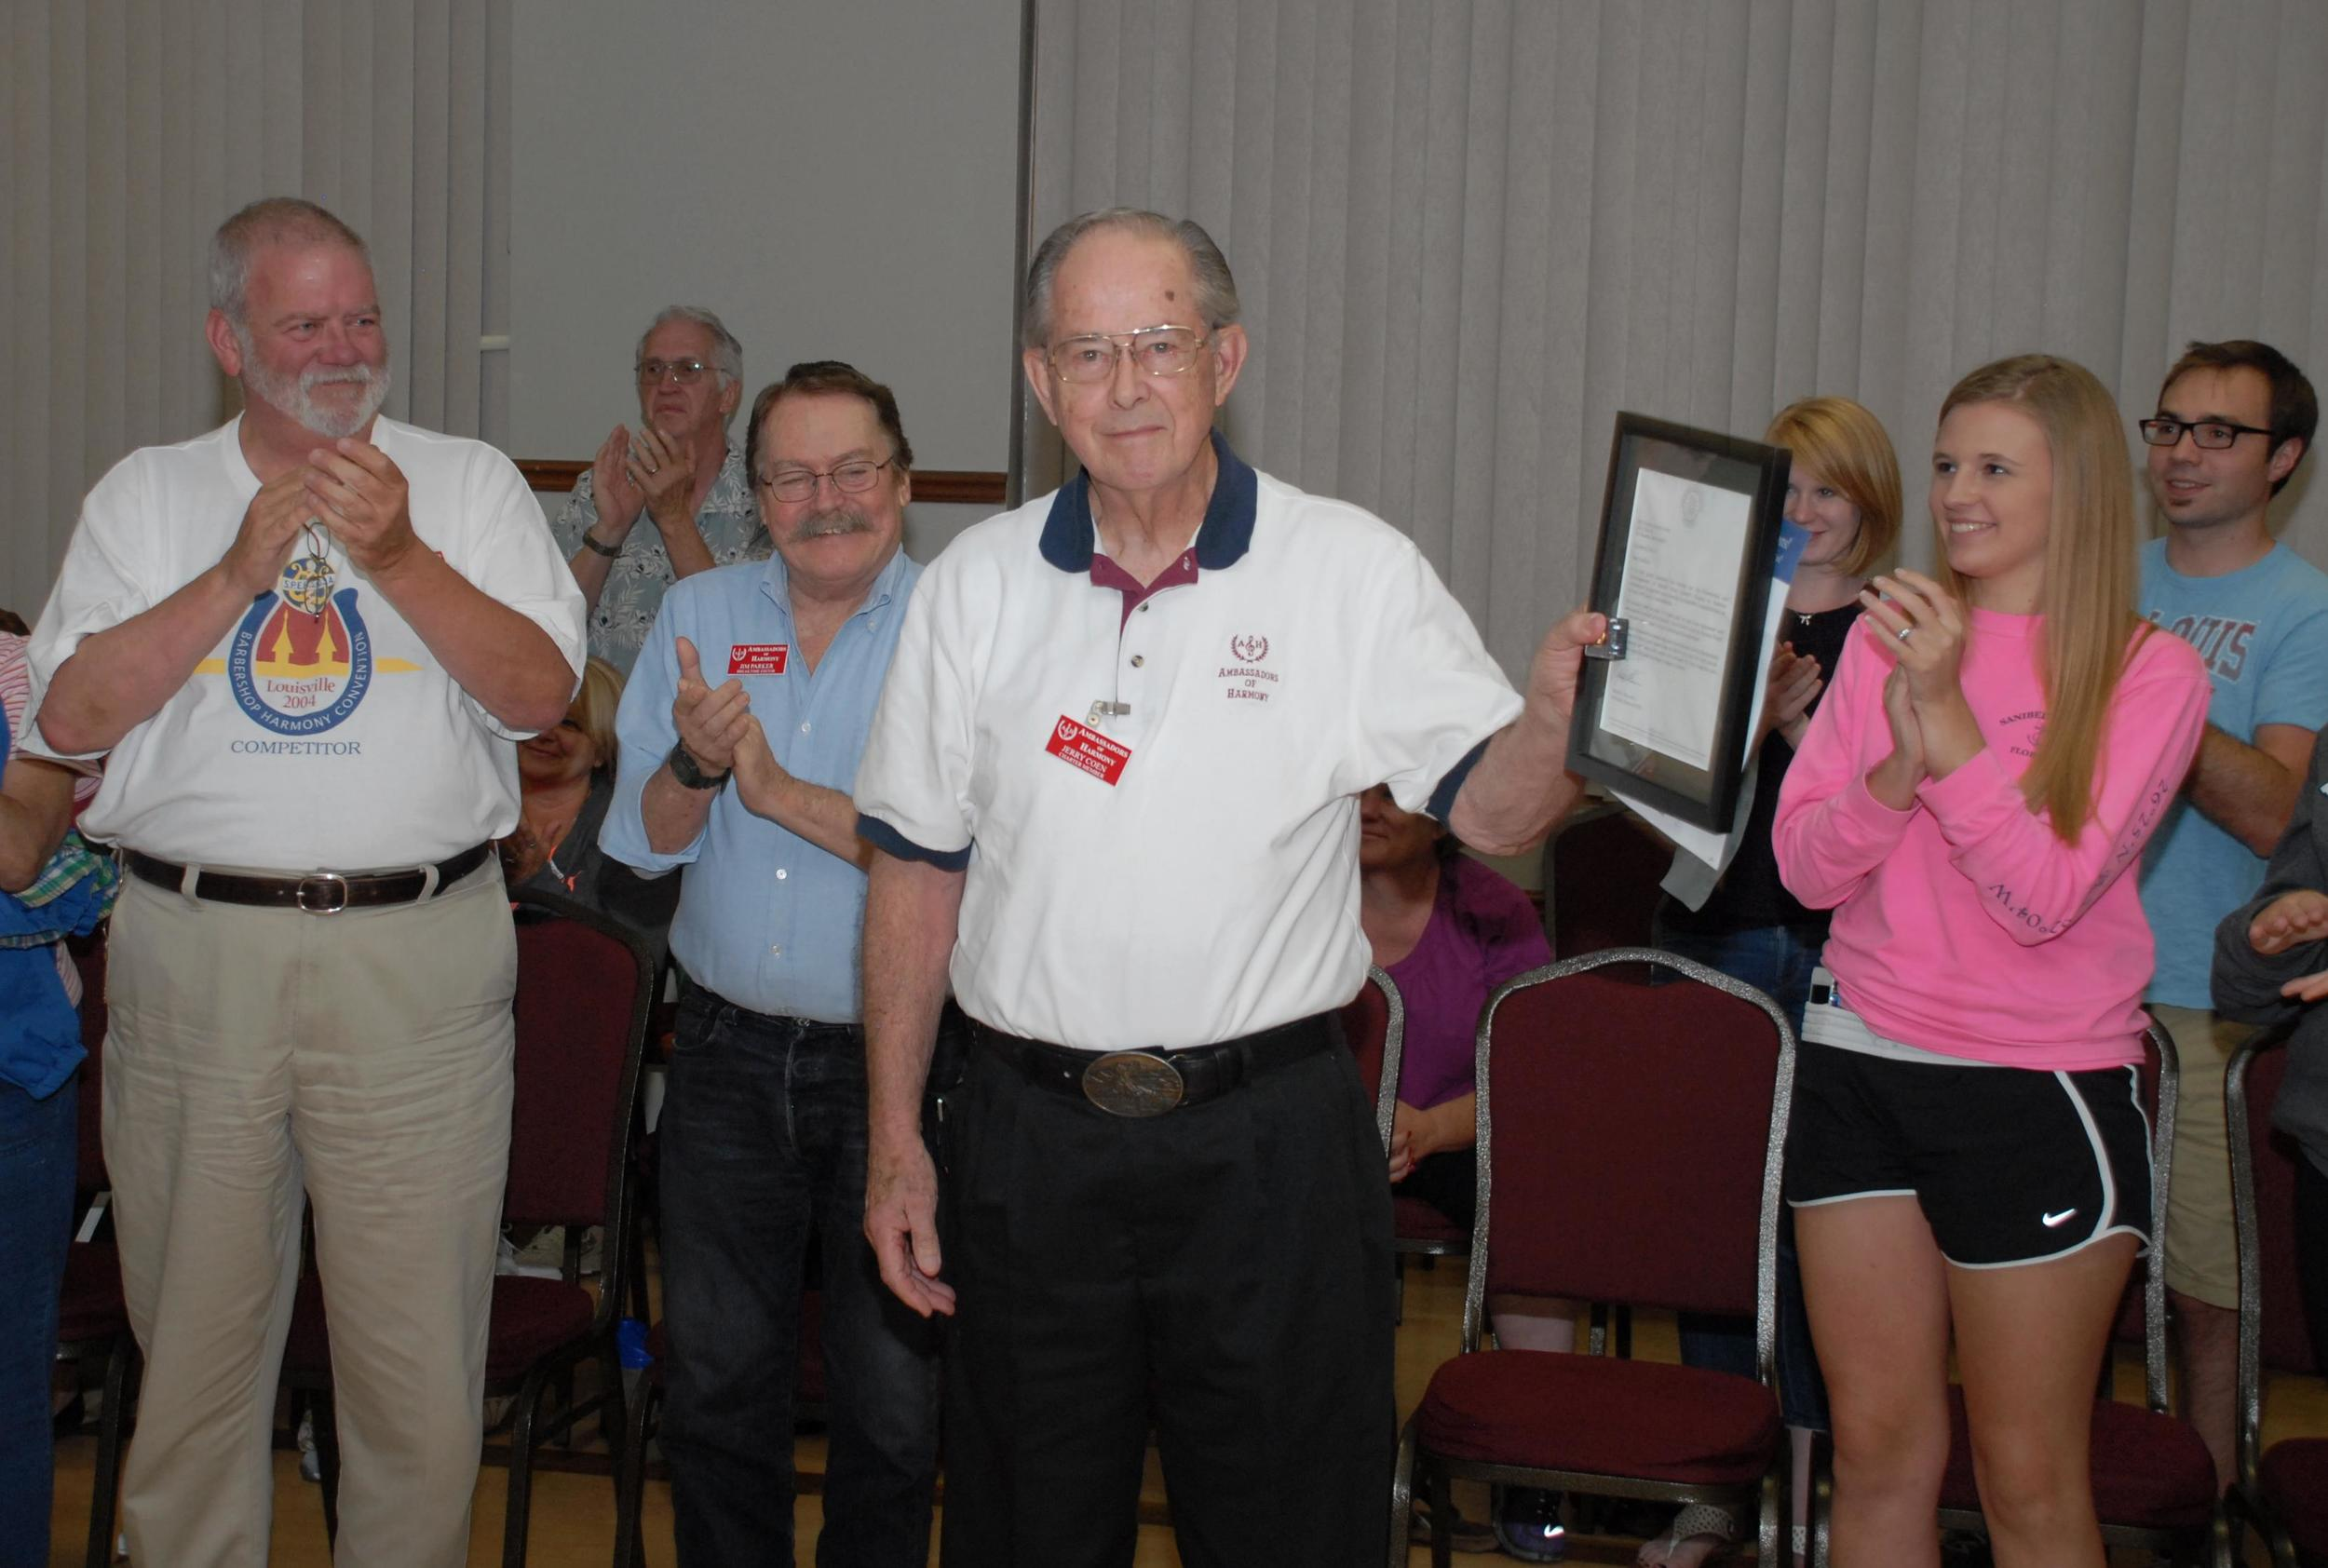 Jerry Coen, founding member of the Ambassadors of Harmony, receives his 50-year pin and certificate on Oct. 10. Photo by Bob Griesedieck